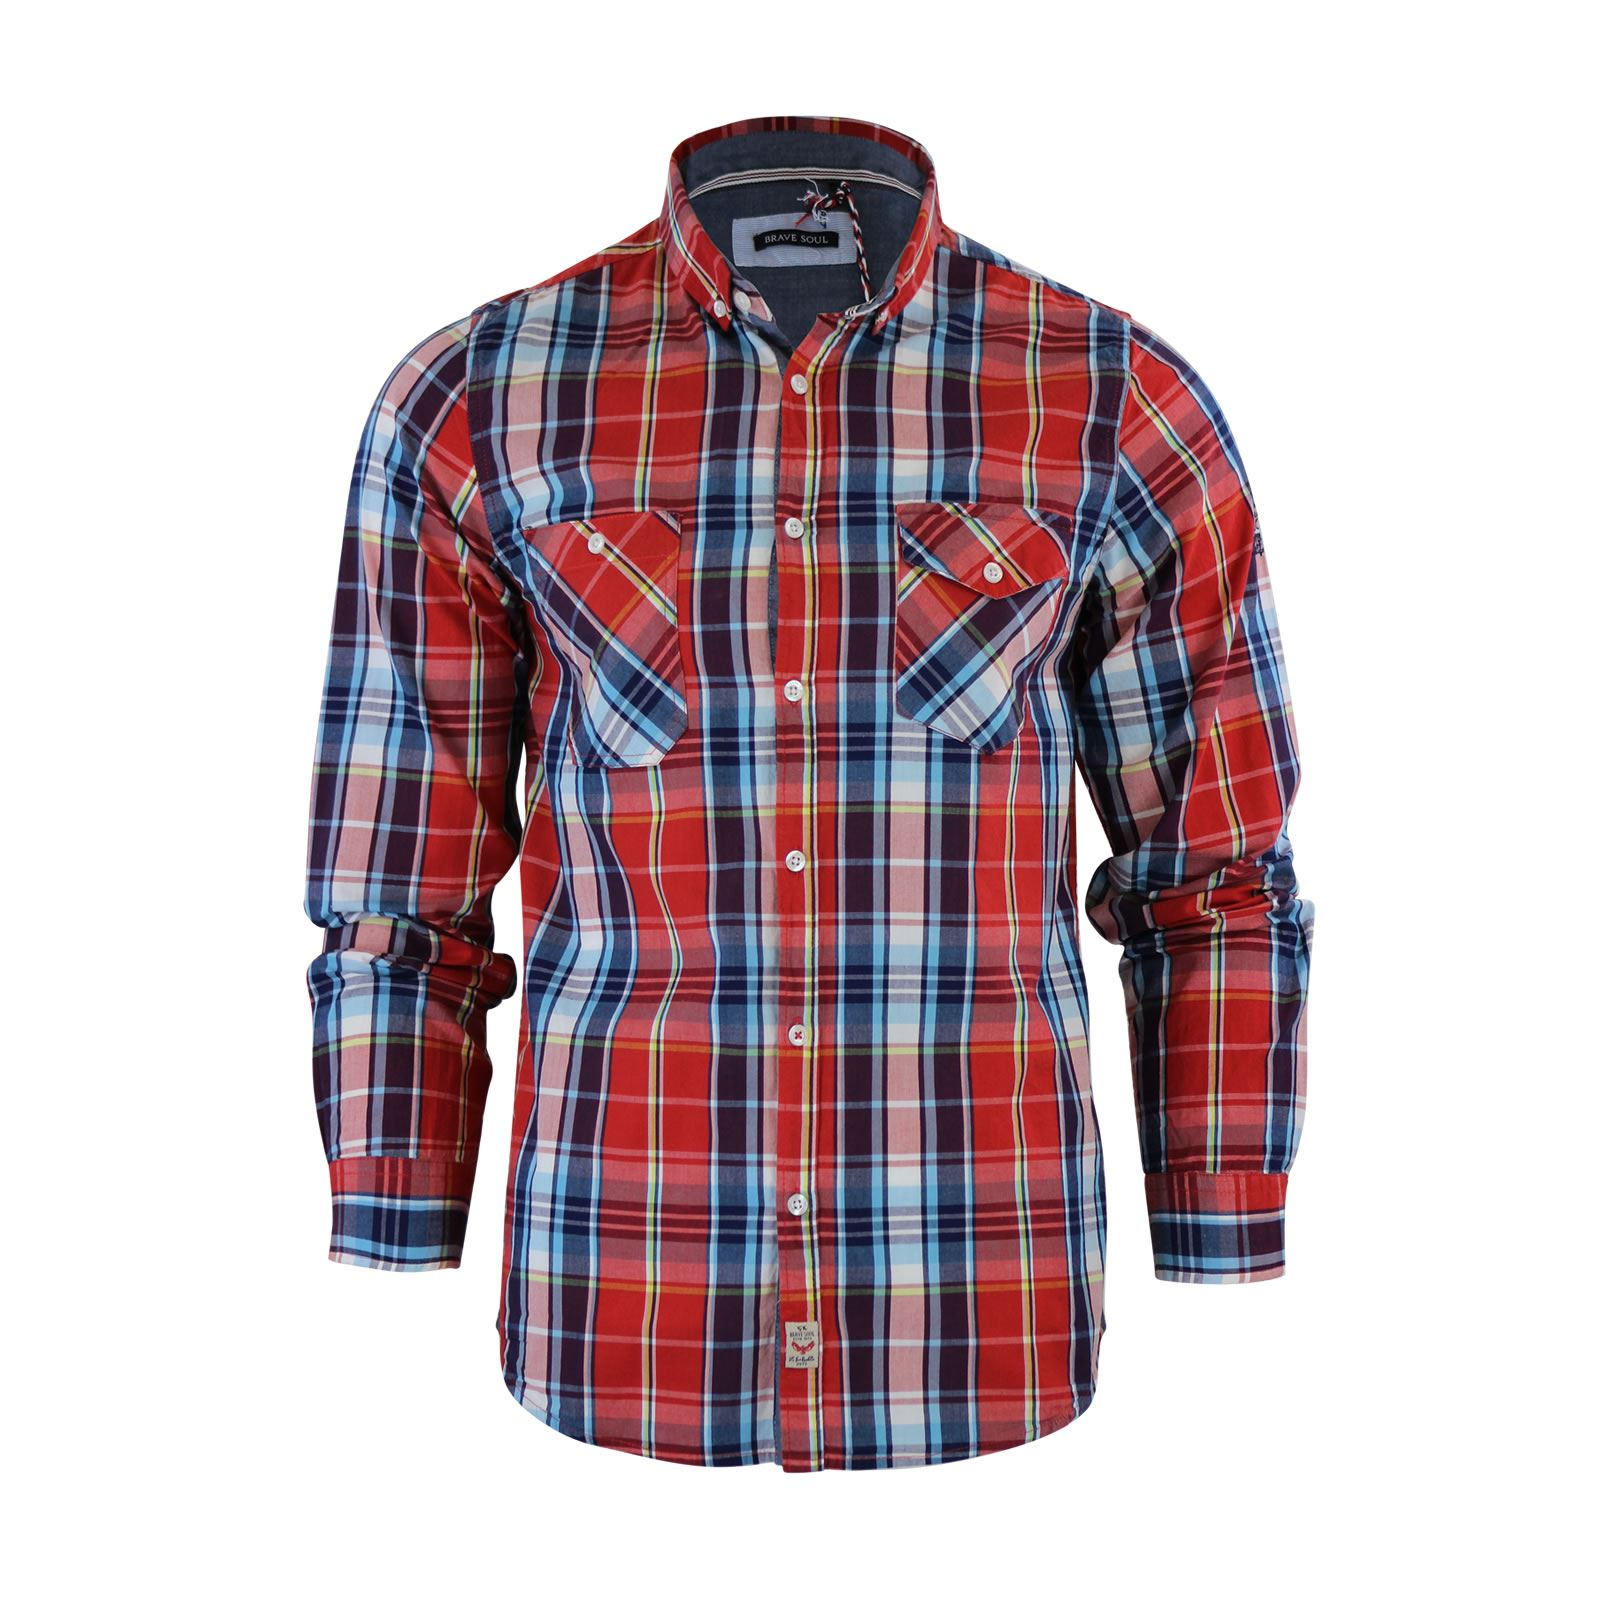 Brave-Soul-Mens-Check-Shirt-Flannel-Brushed-Cotton-Long-Sleeve-Casual-Top thumbnail 8